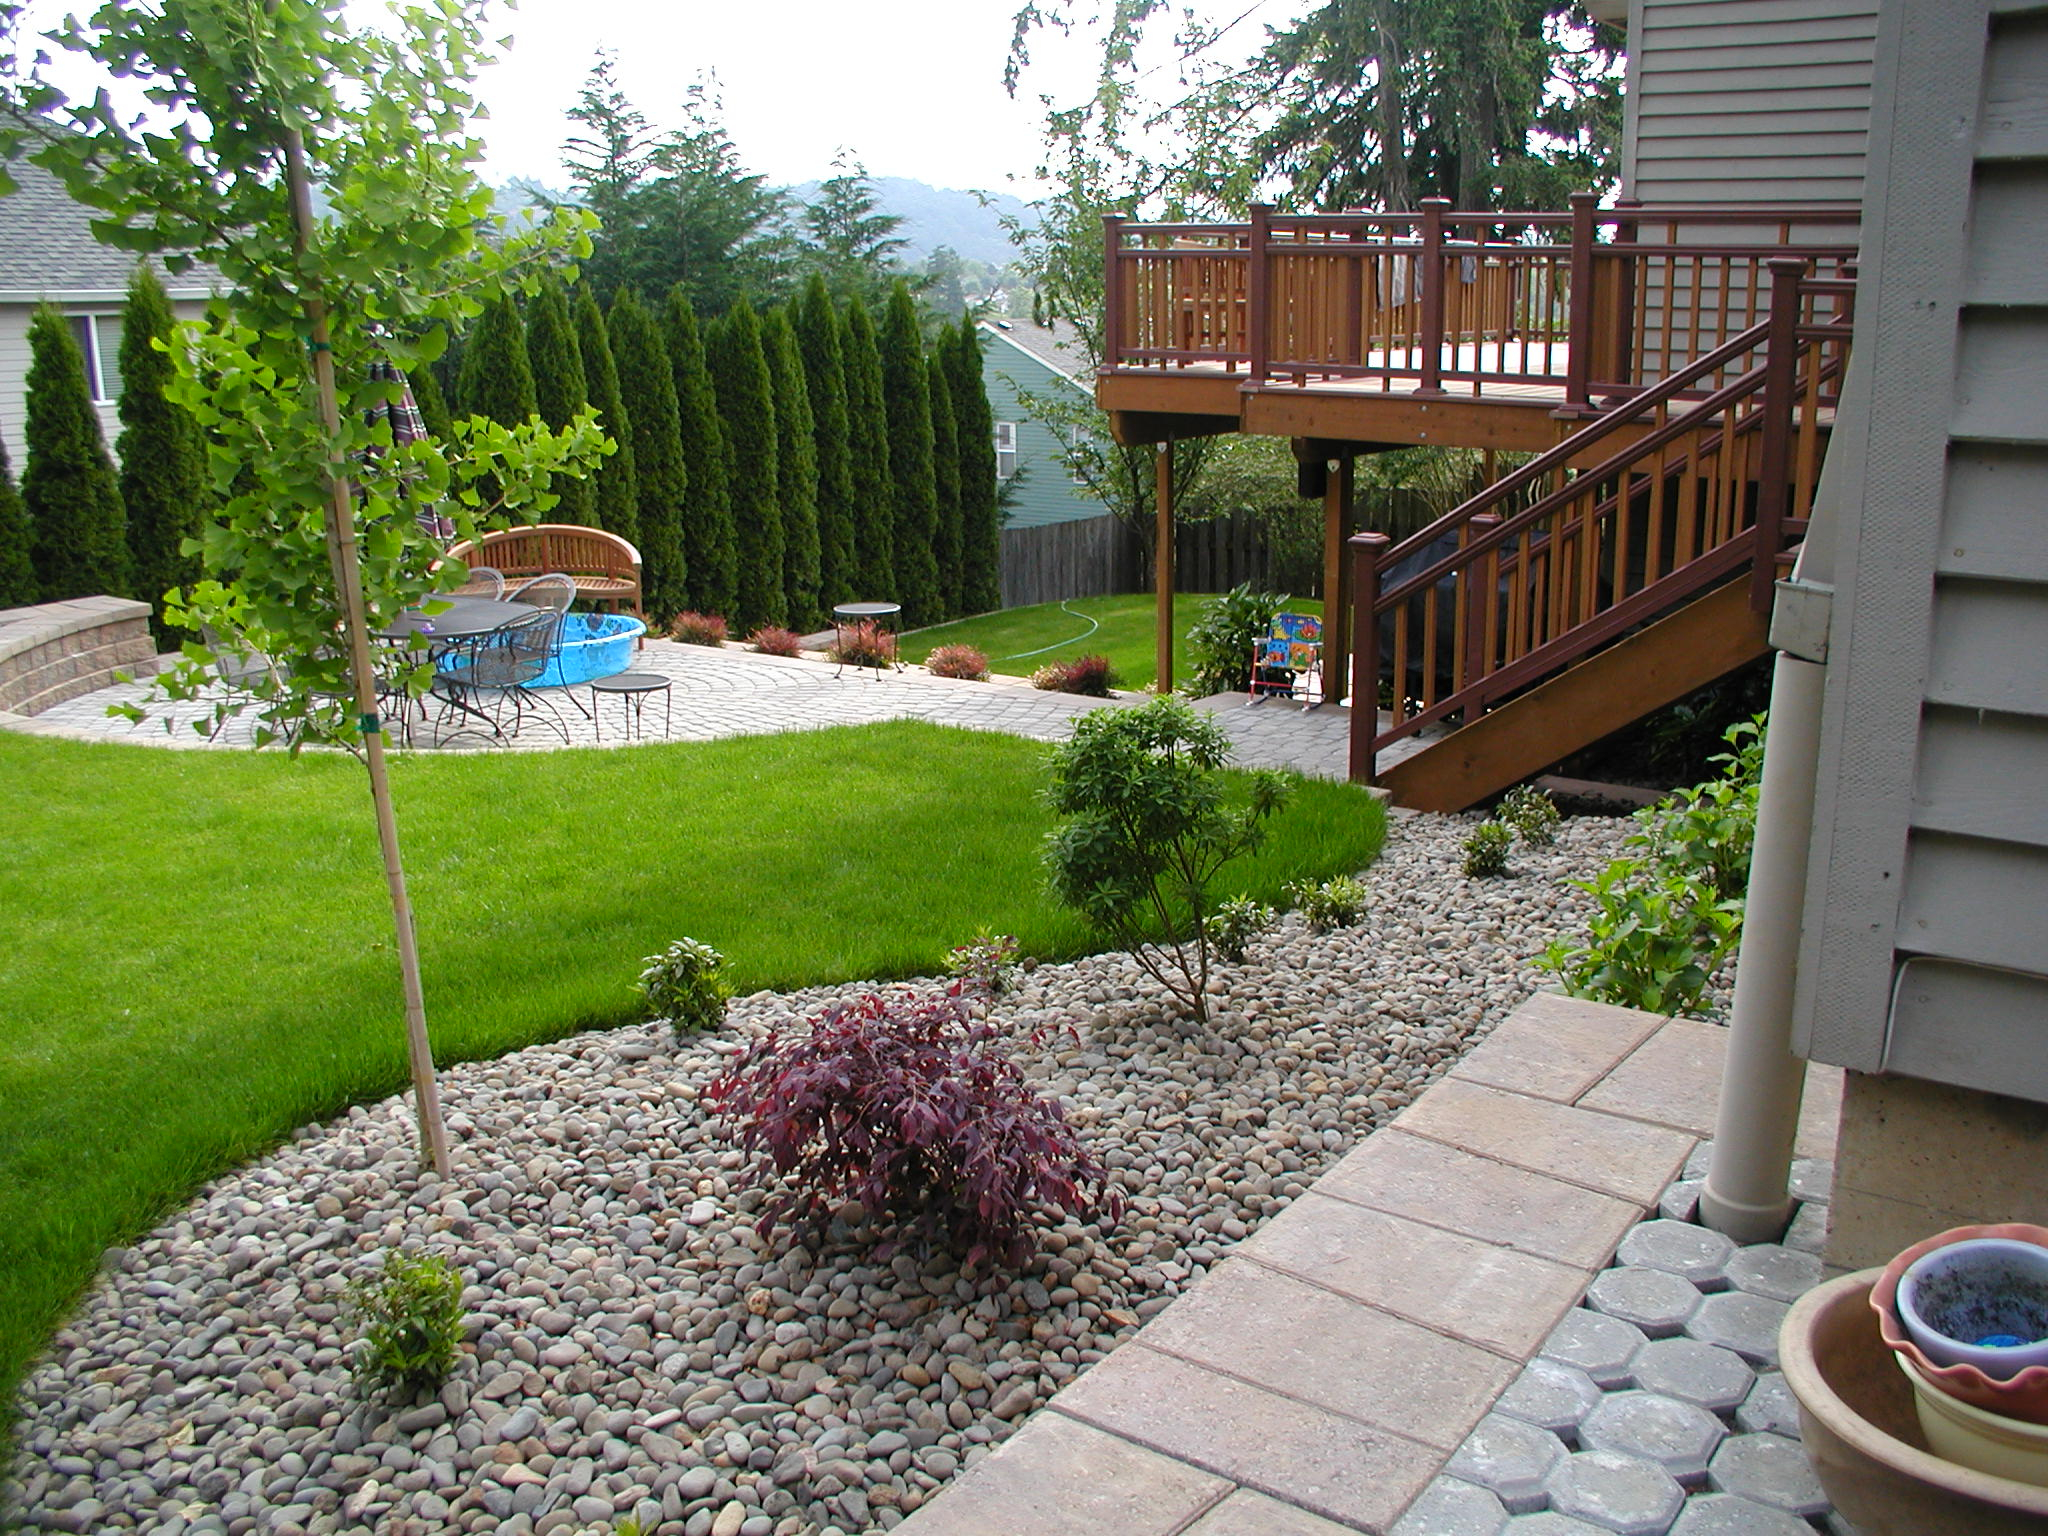 Backyard Pool Landscaping Ideas Design Privacy Large And Beautiful in 15 Some of the Coolest Tricks of How to Improve How To Landscape Backyard